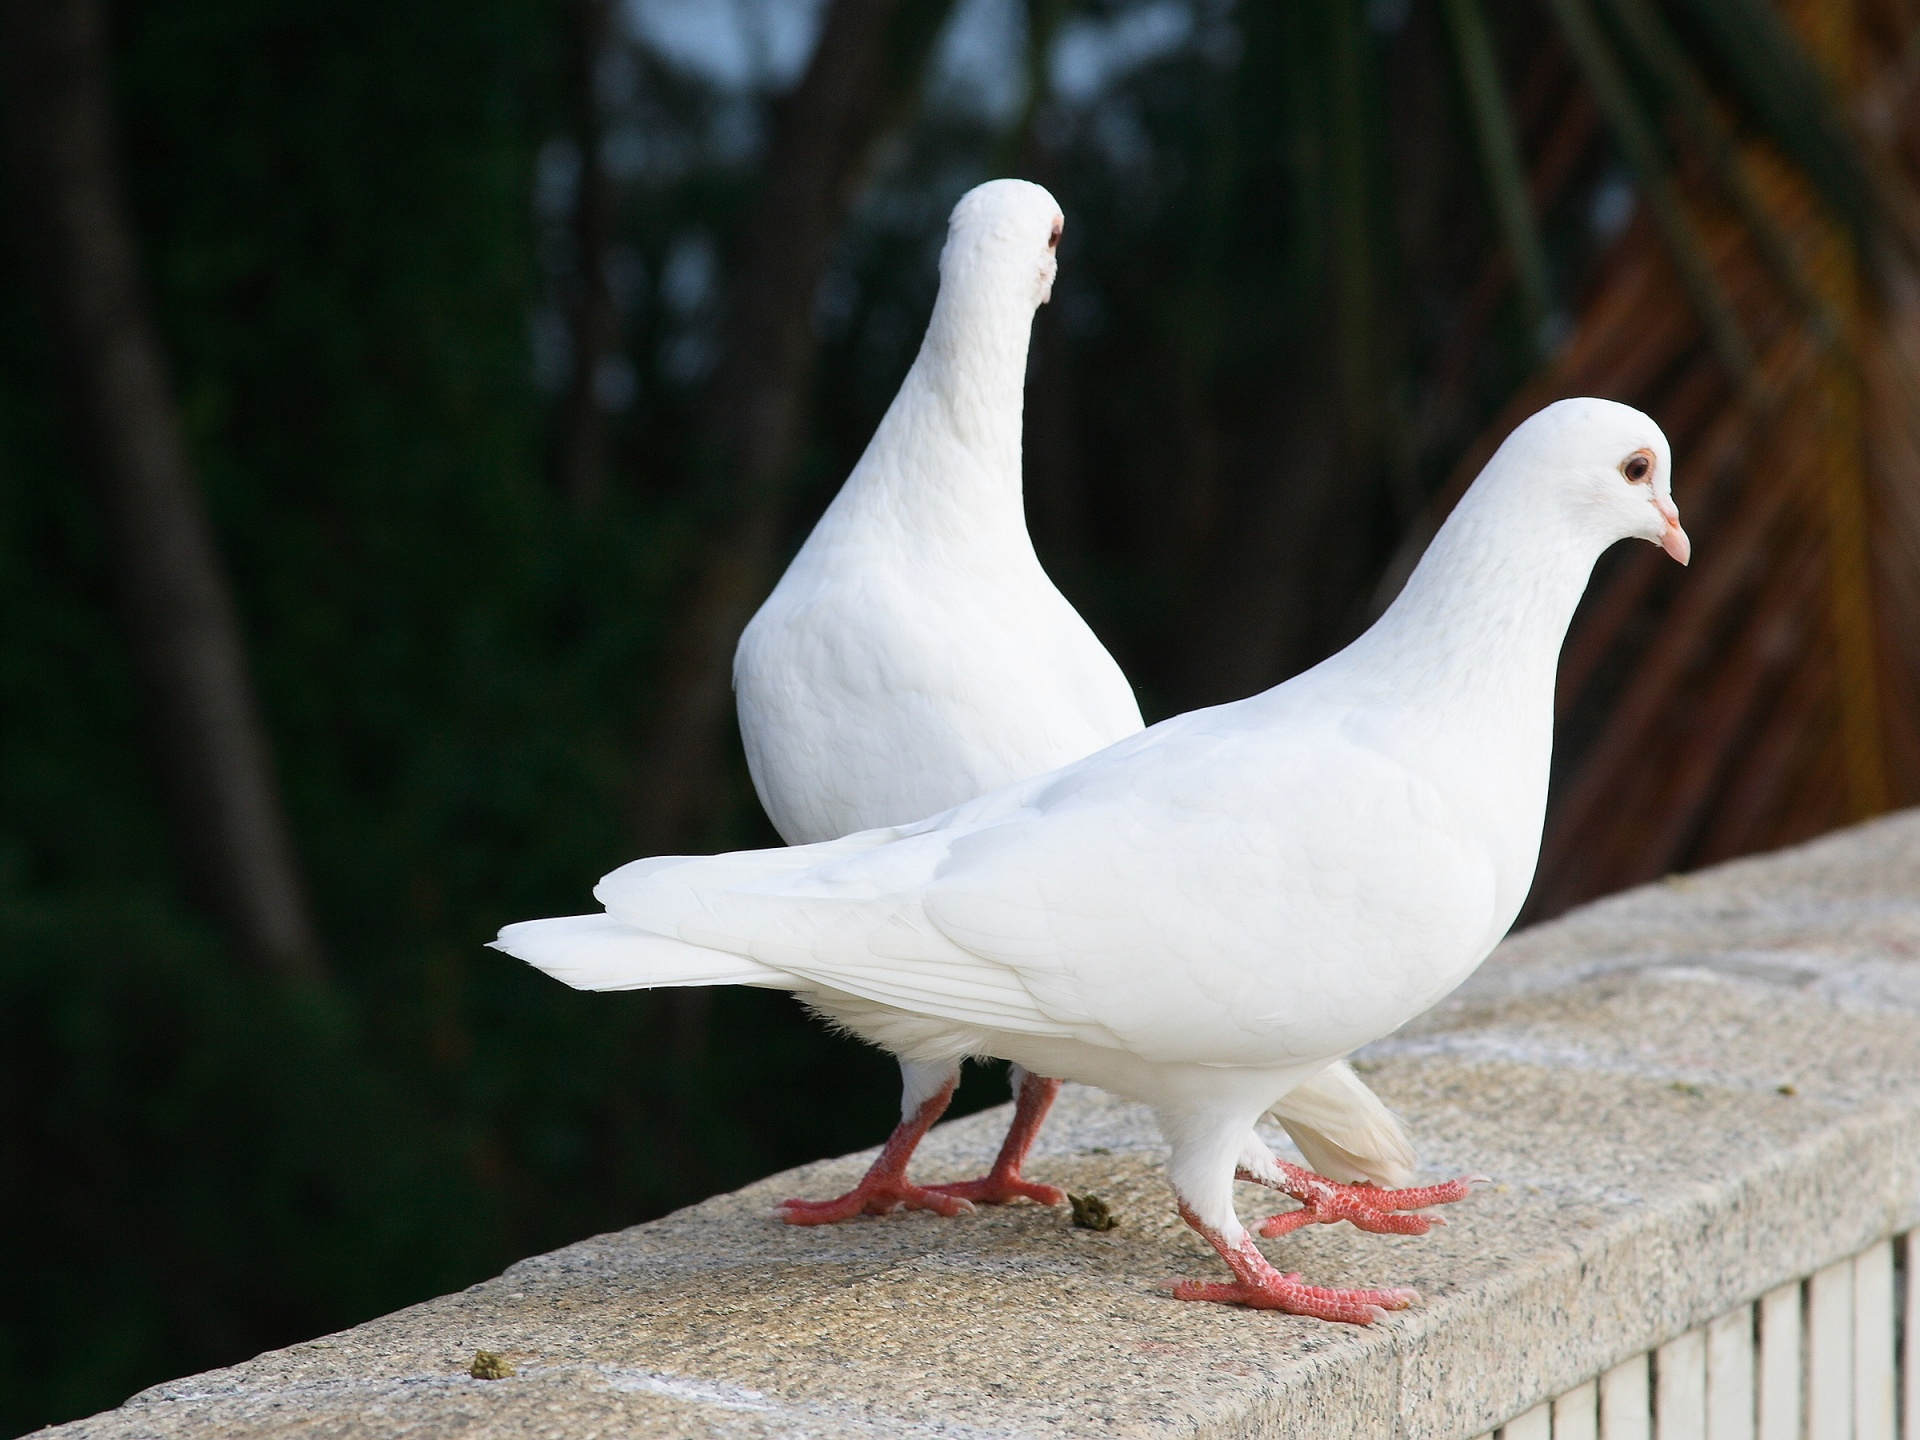 White pigeon doves